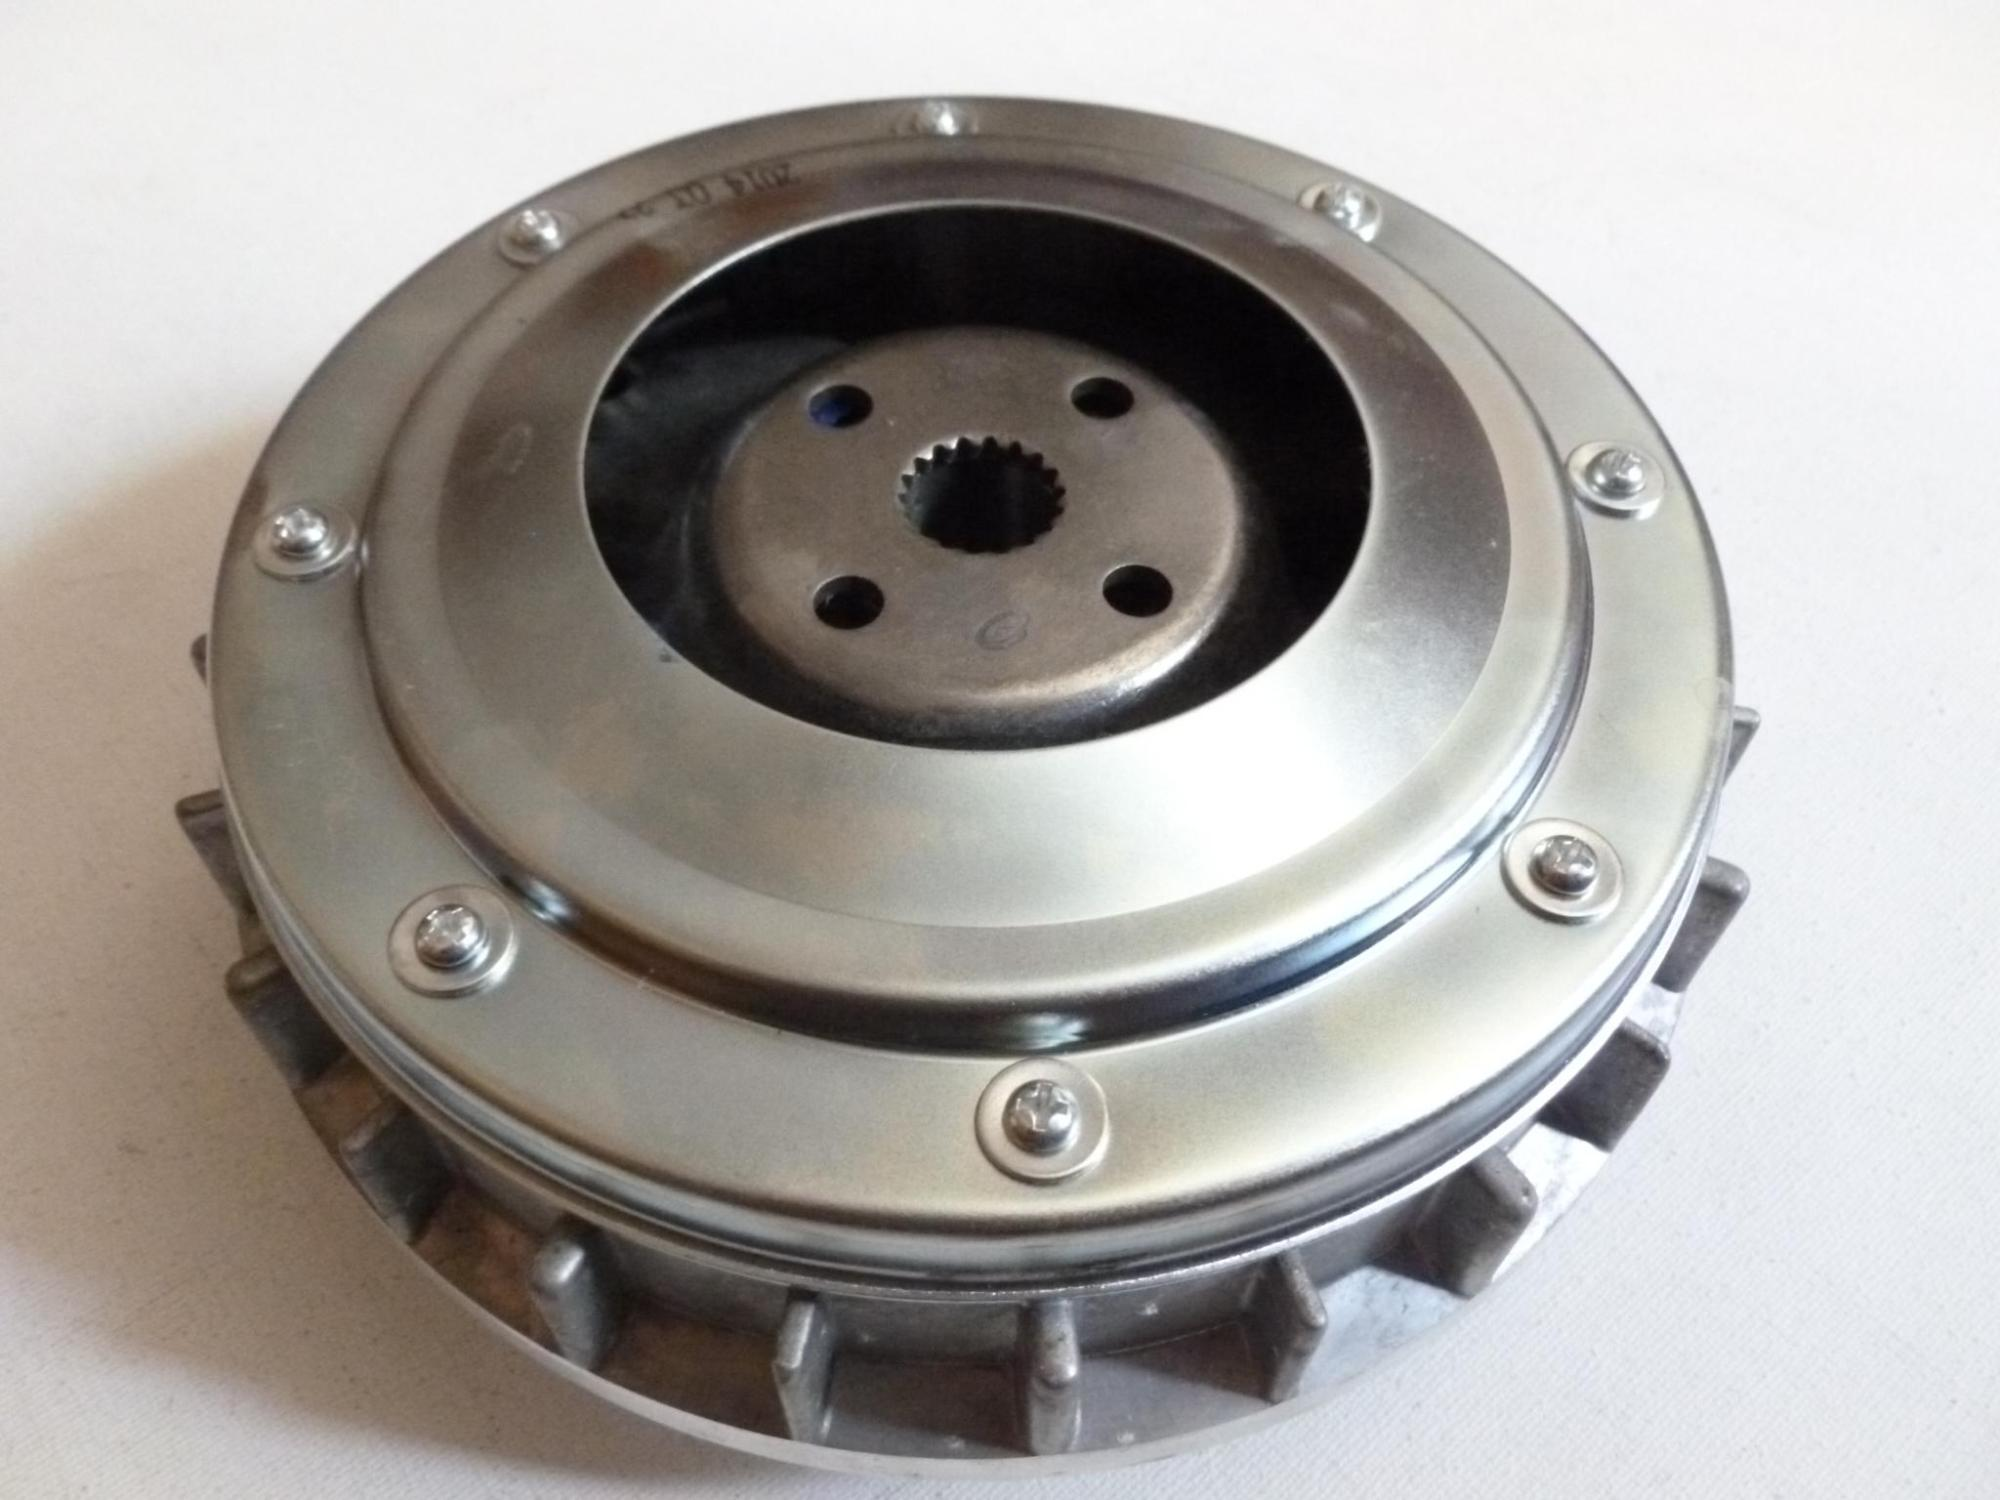 hight resolution of new grizzly 660 4x4 primary clutch sheave assembly fits yamaha grizzly 660 2002 2008 off brand atv parts off road atv parts from annkparts 140 71 dhgate